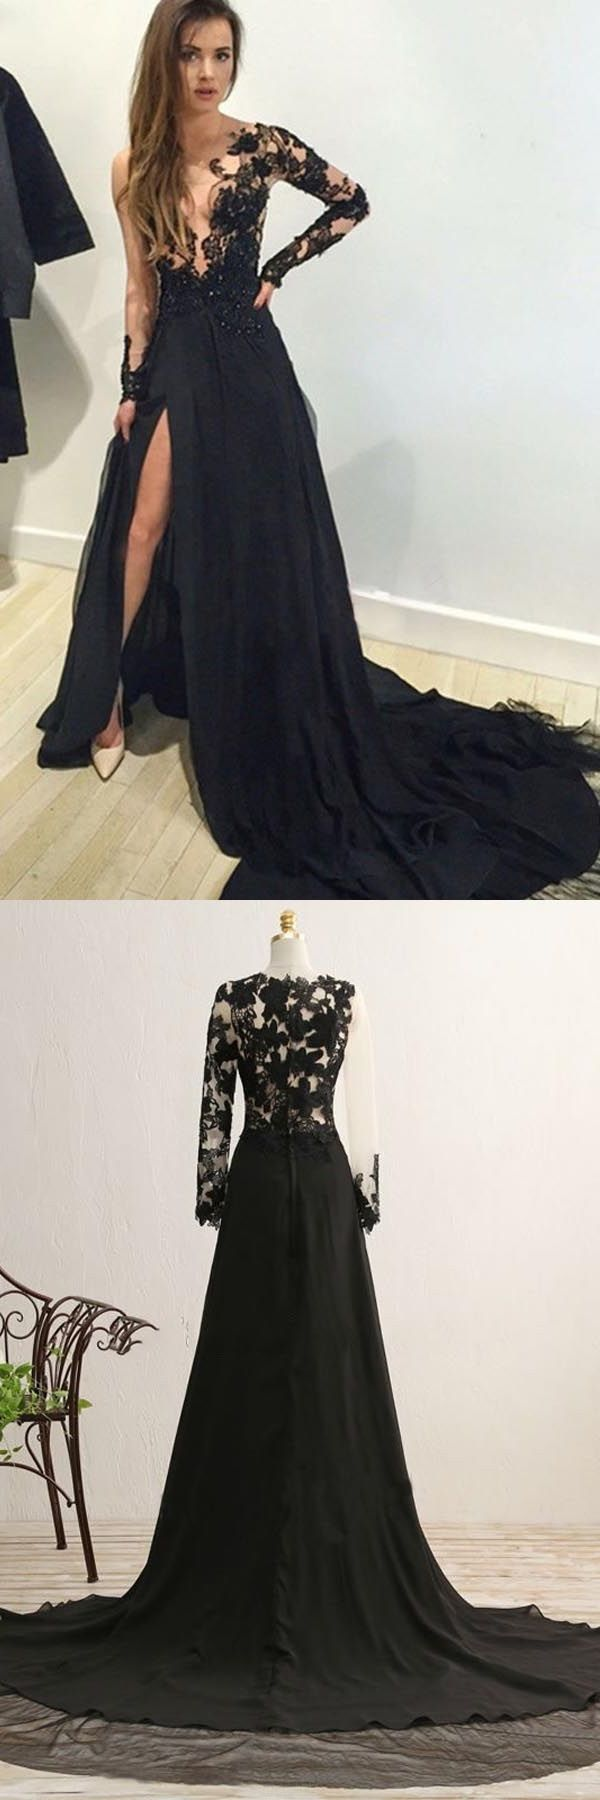 Hot sale magnificent prom dresses with sleeves aline vneck long